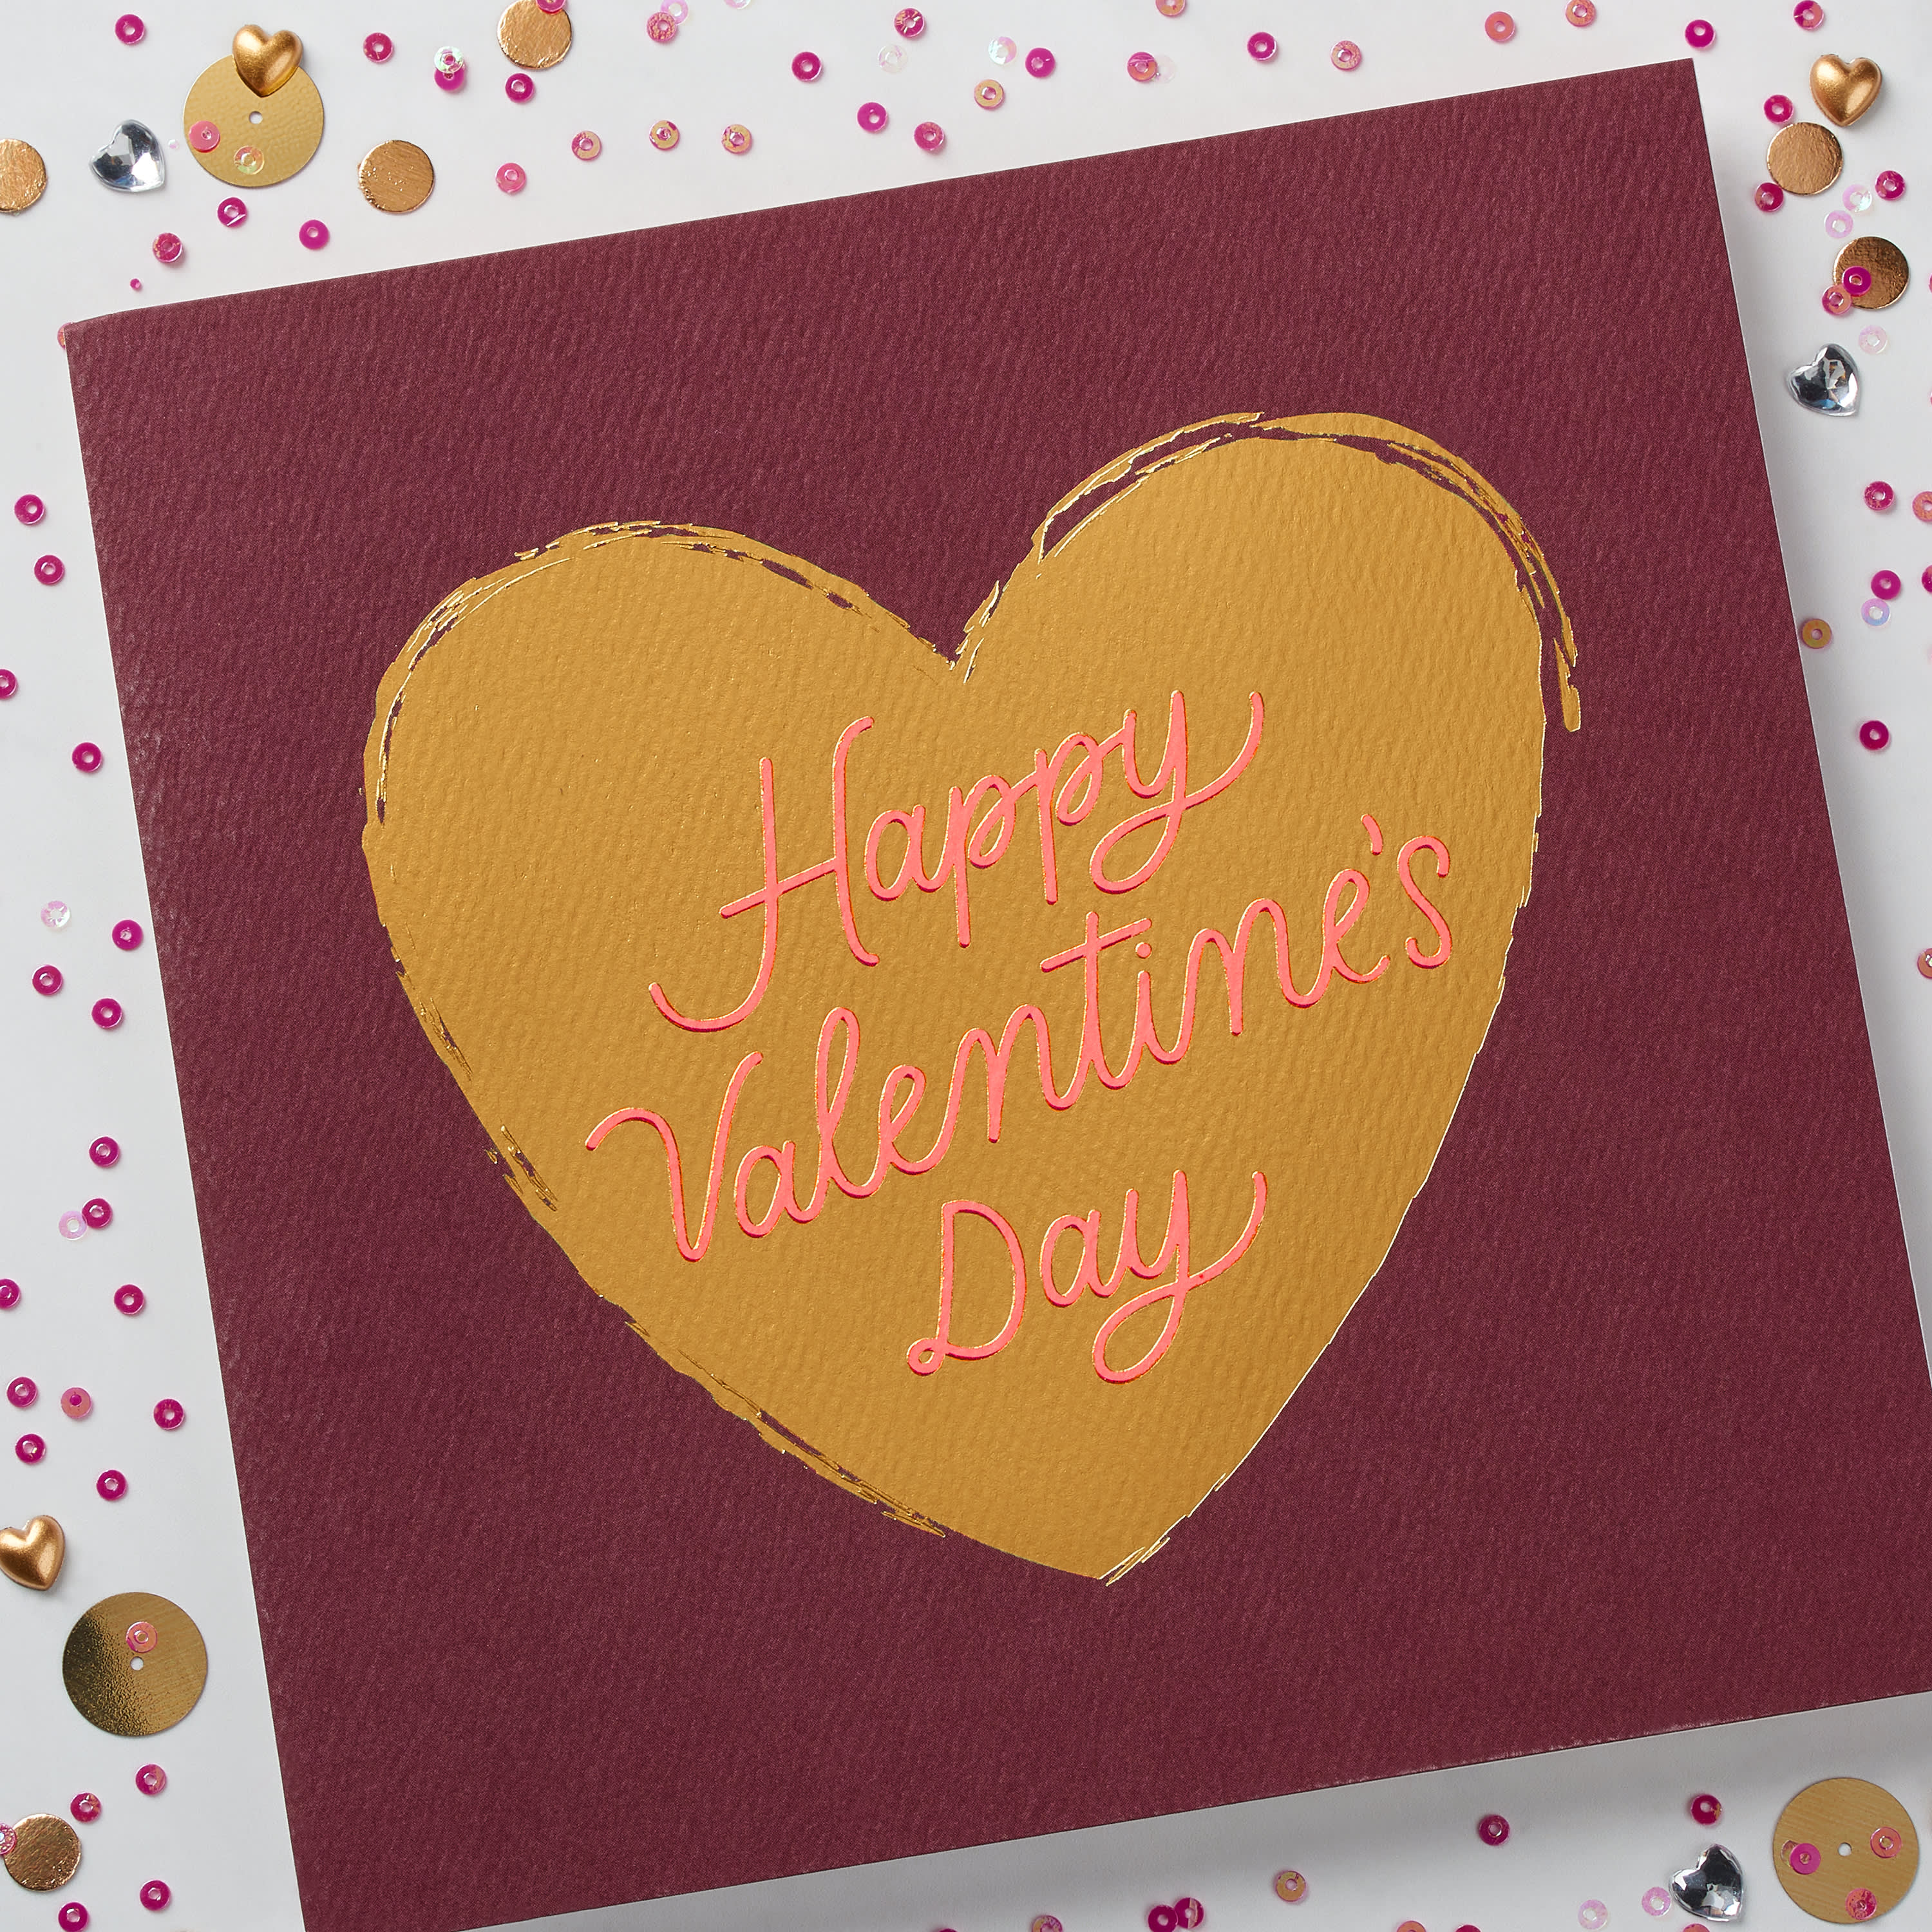 Heart Valentine's Day Card image